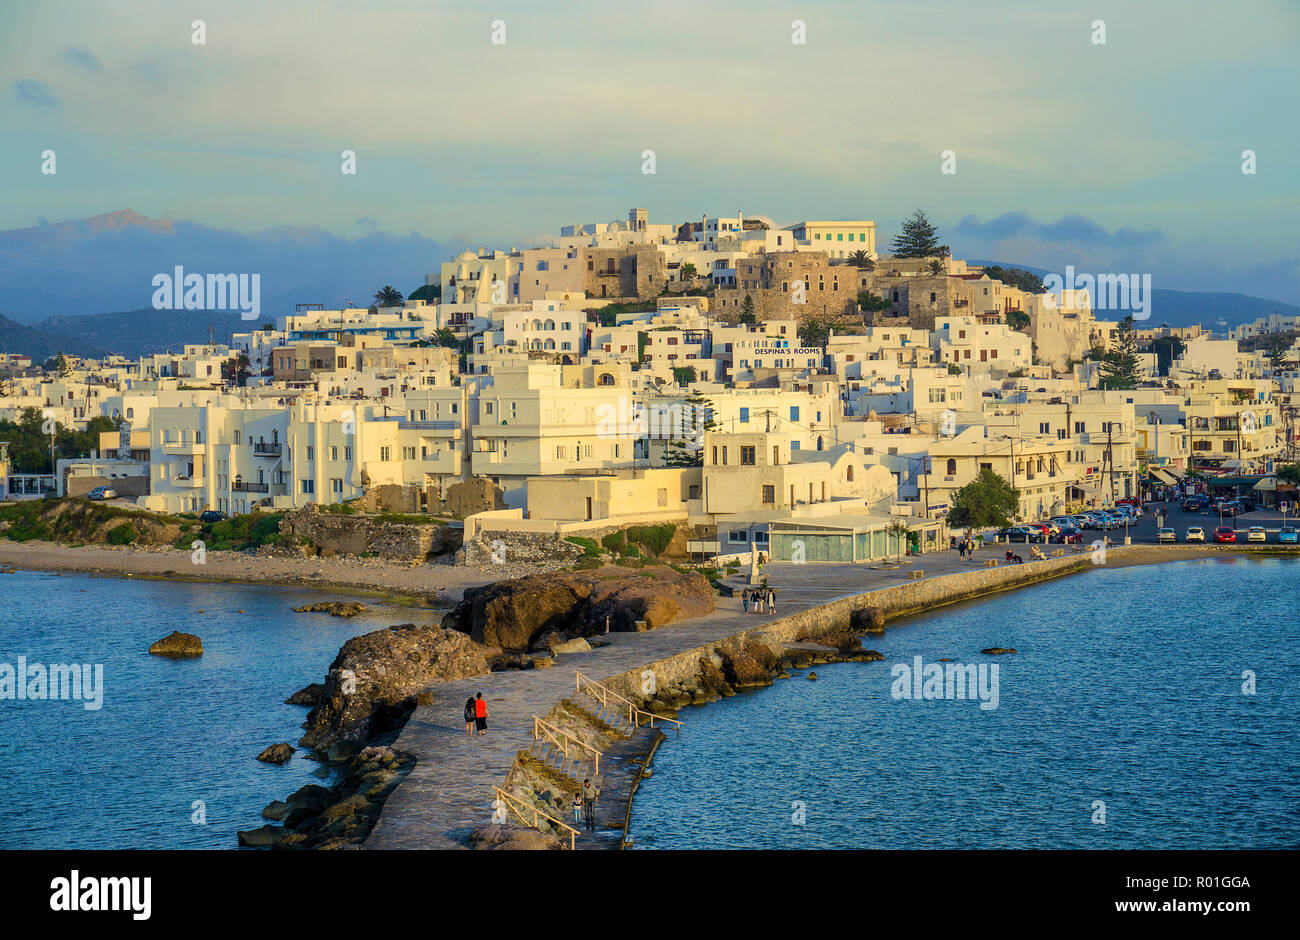 Naxos city in the evening light, island of Naxos, Cyclades, Aegean Sea, Greece - Stock Image